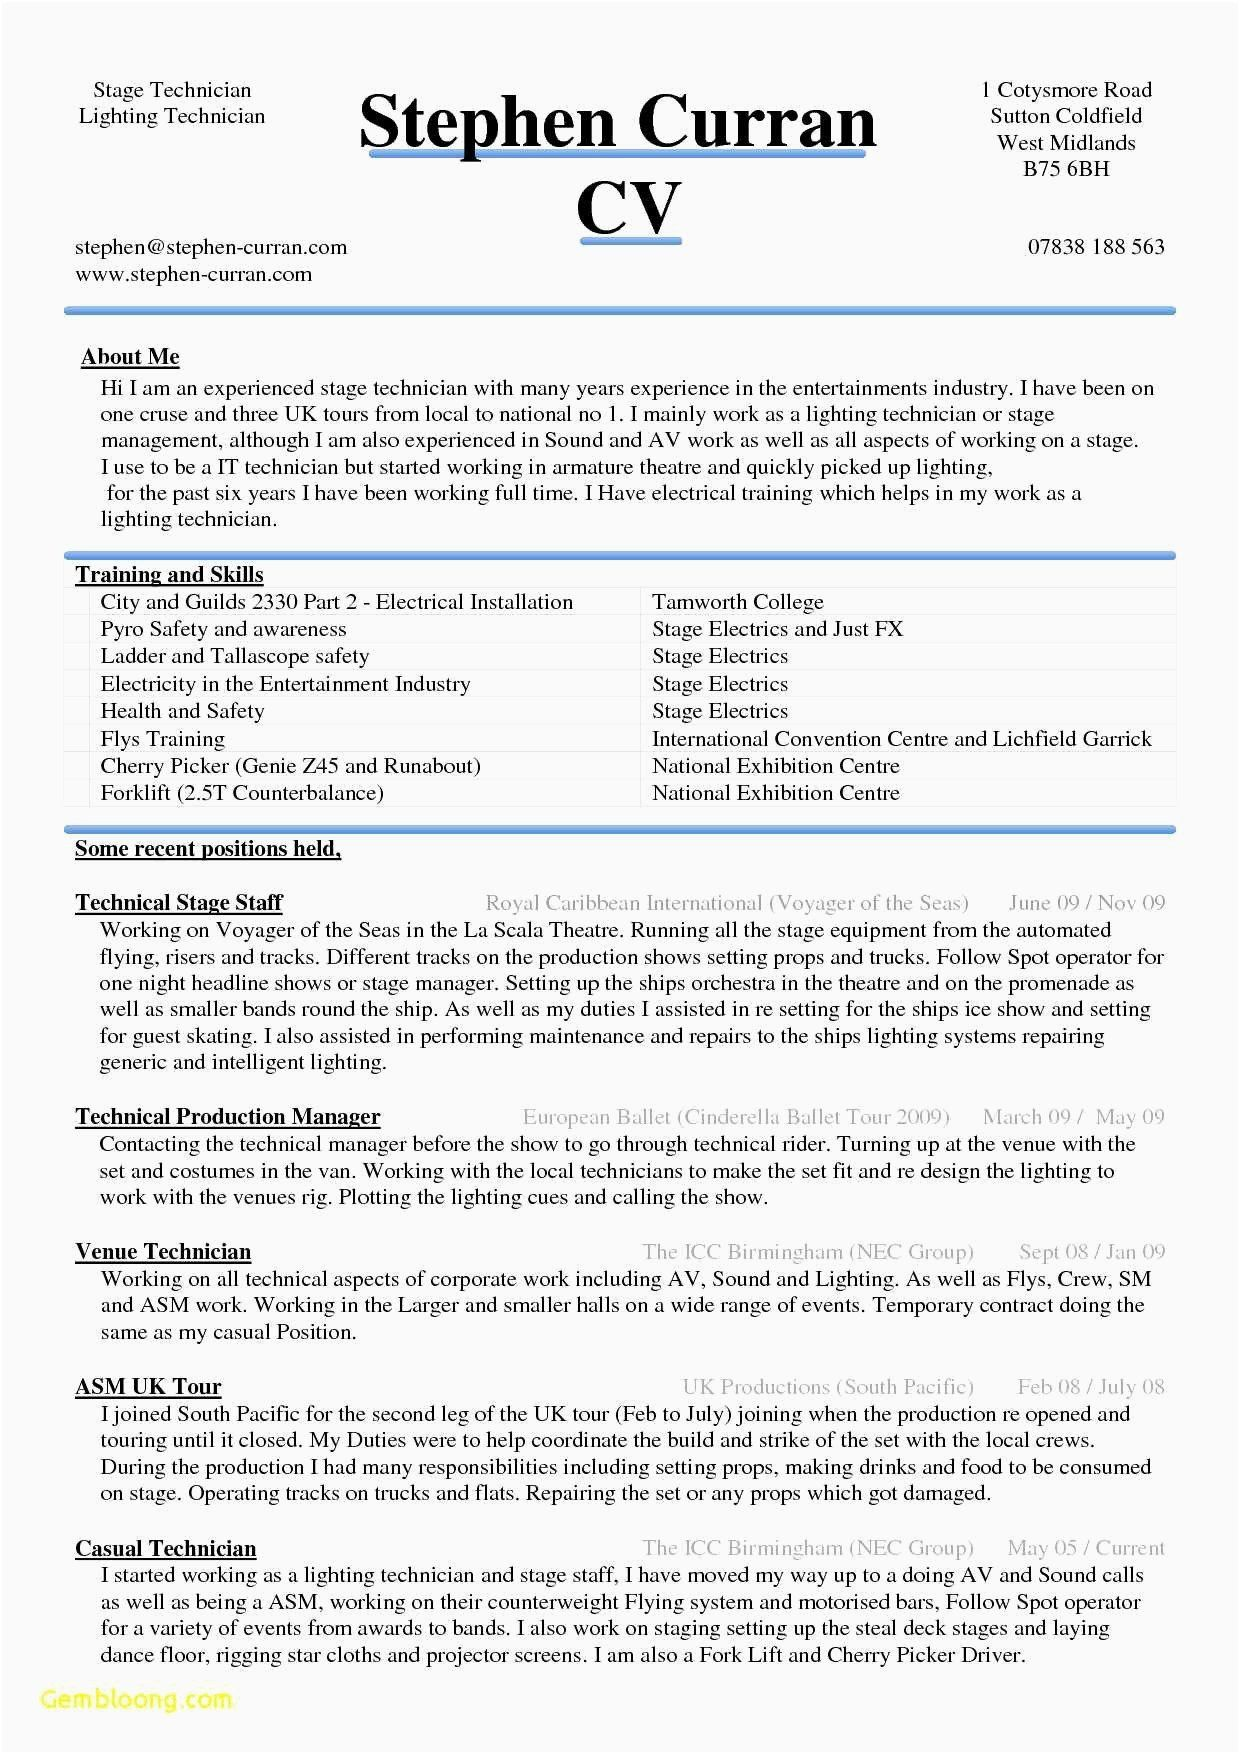 acting resume template for microsoft word luxury download sample of cv masters application warehouse supervisor objective